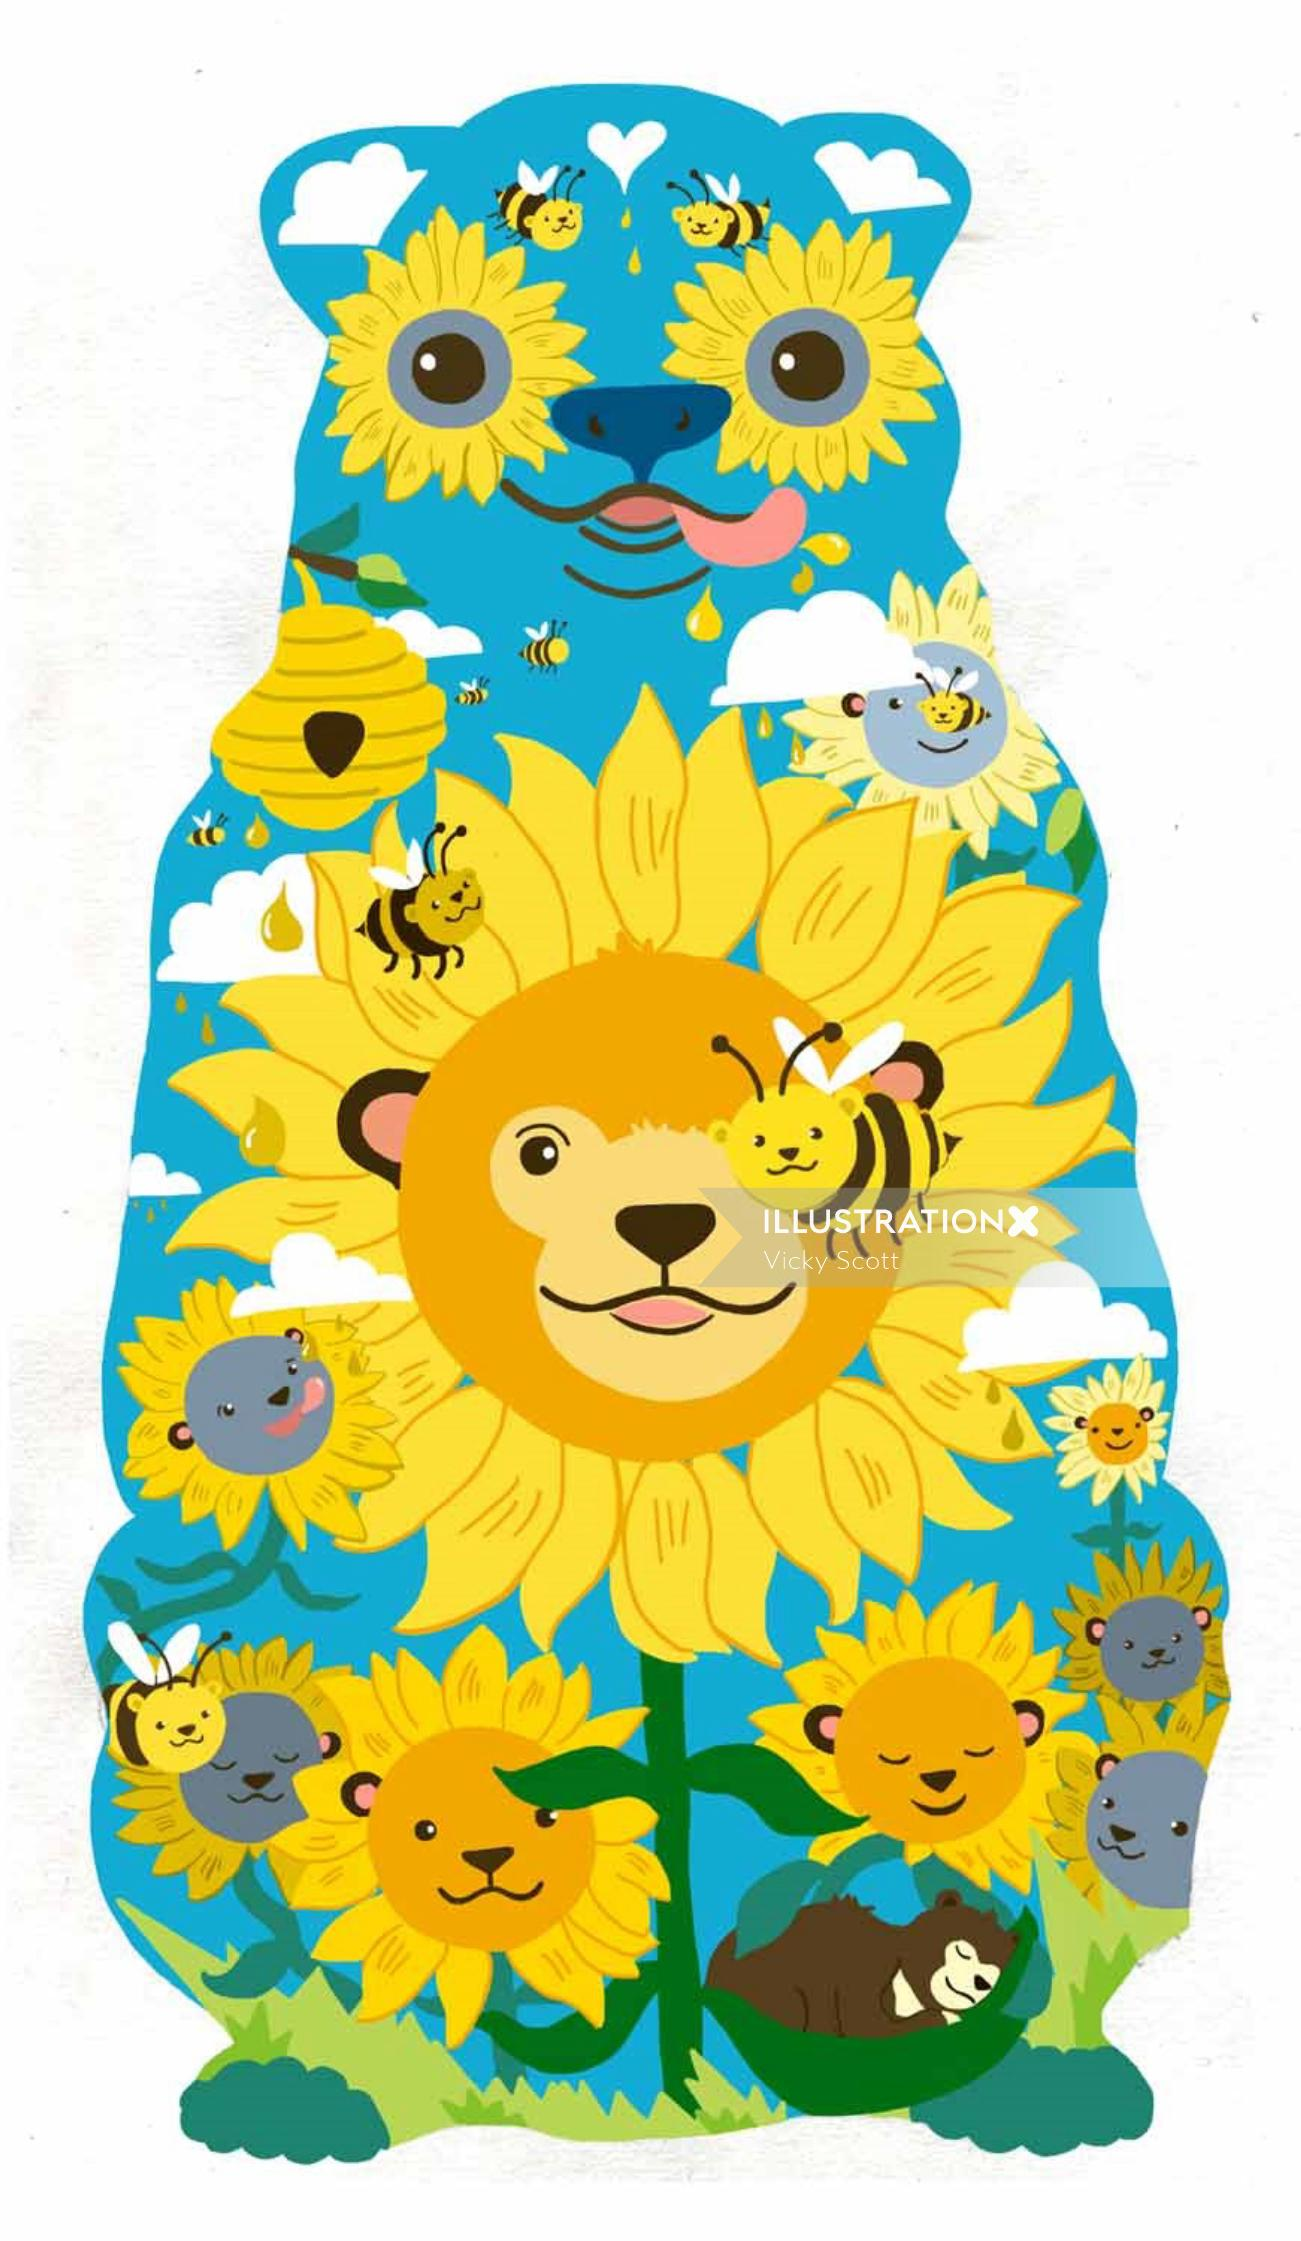 Bear, from bees to sunflowers   handmade paper collage